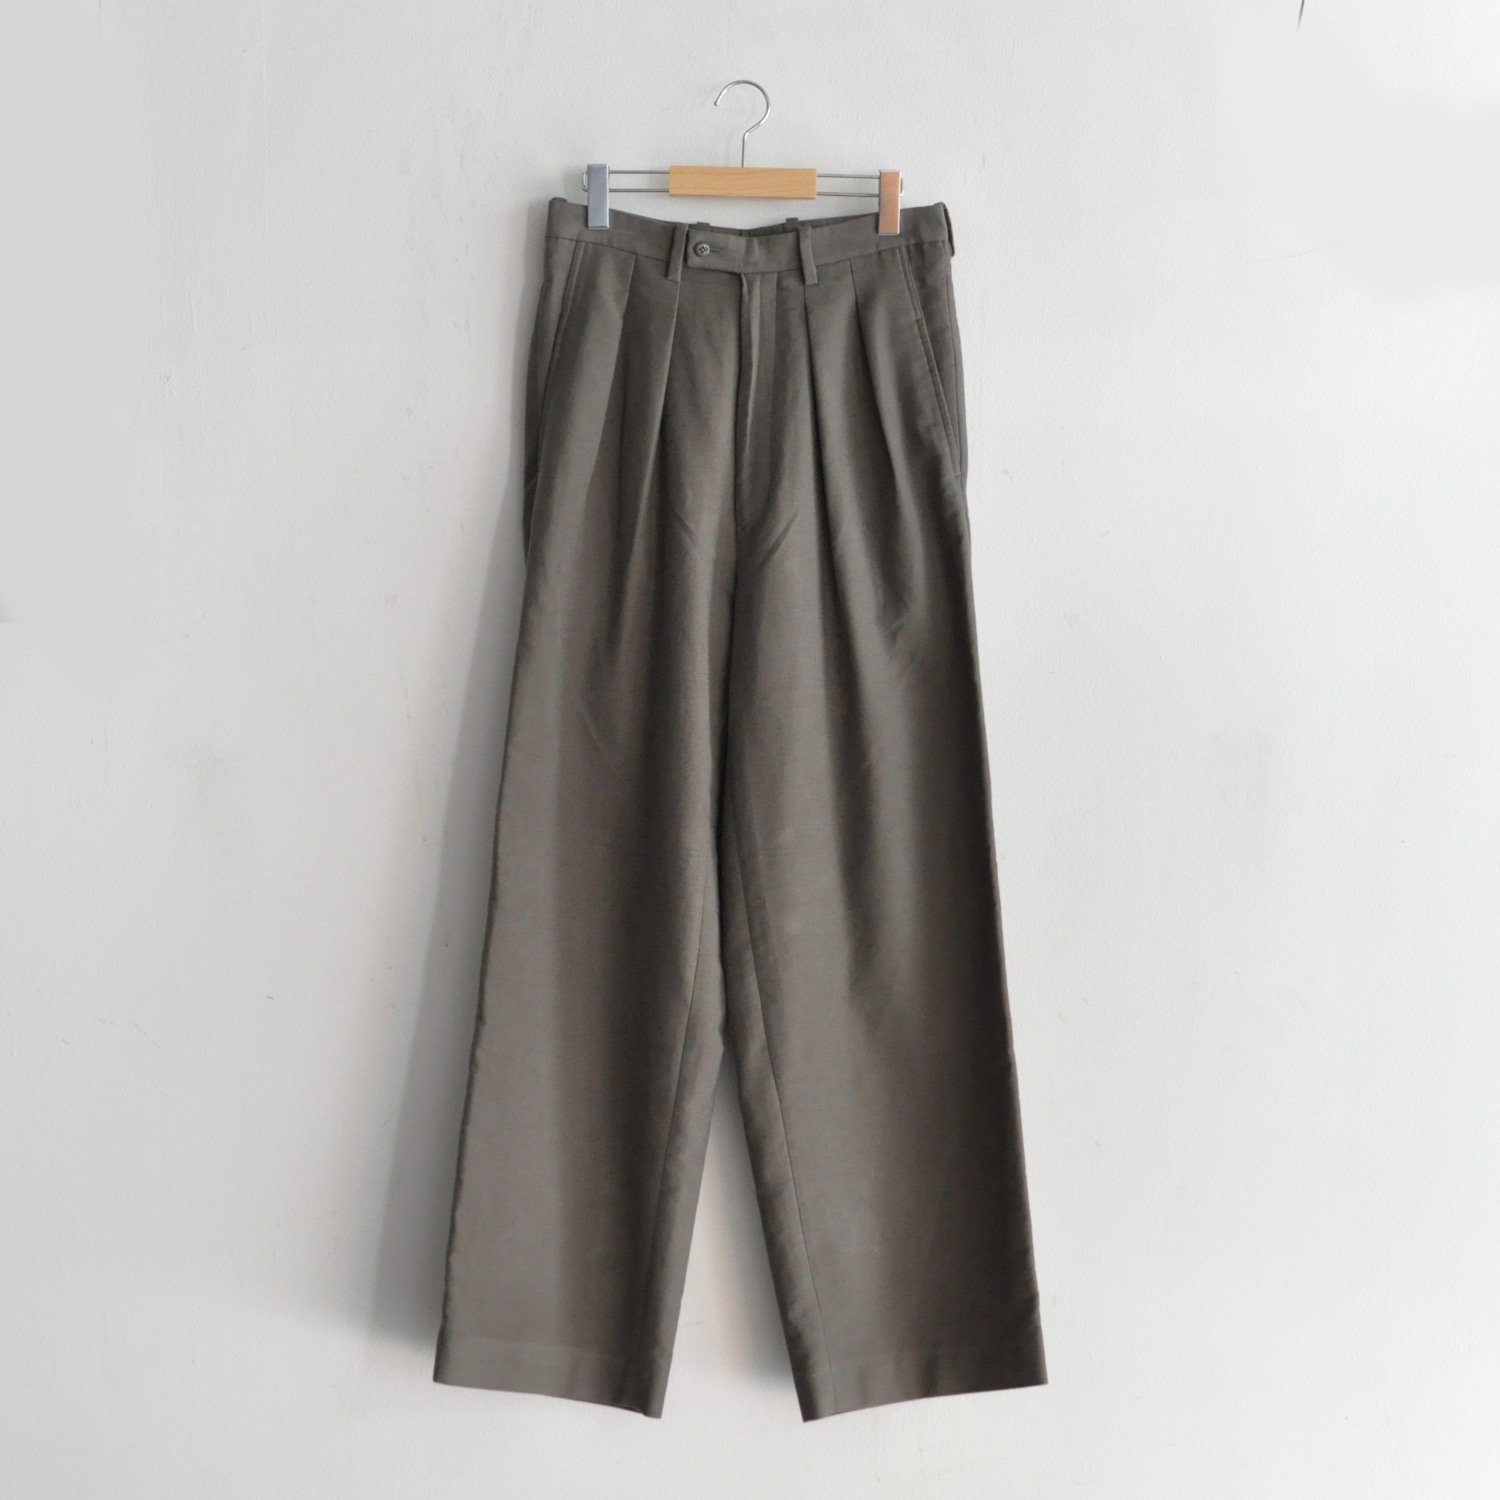 2 TUCKED DRESS WIDE BAGGY PANTS [BEIGEGREY]